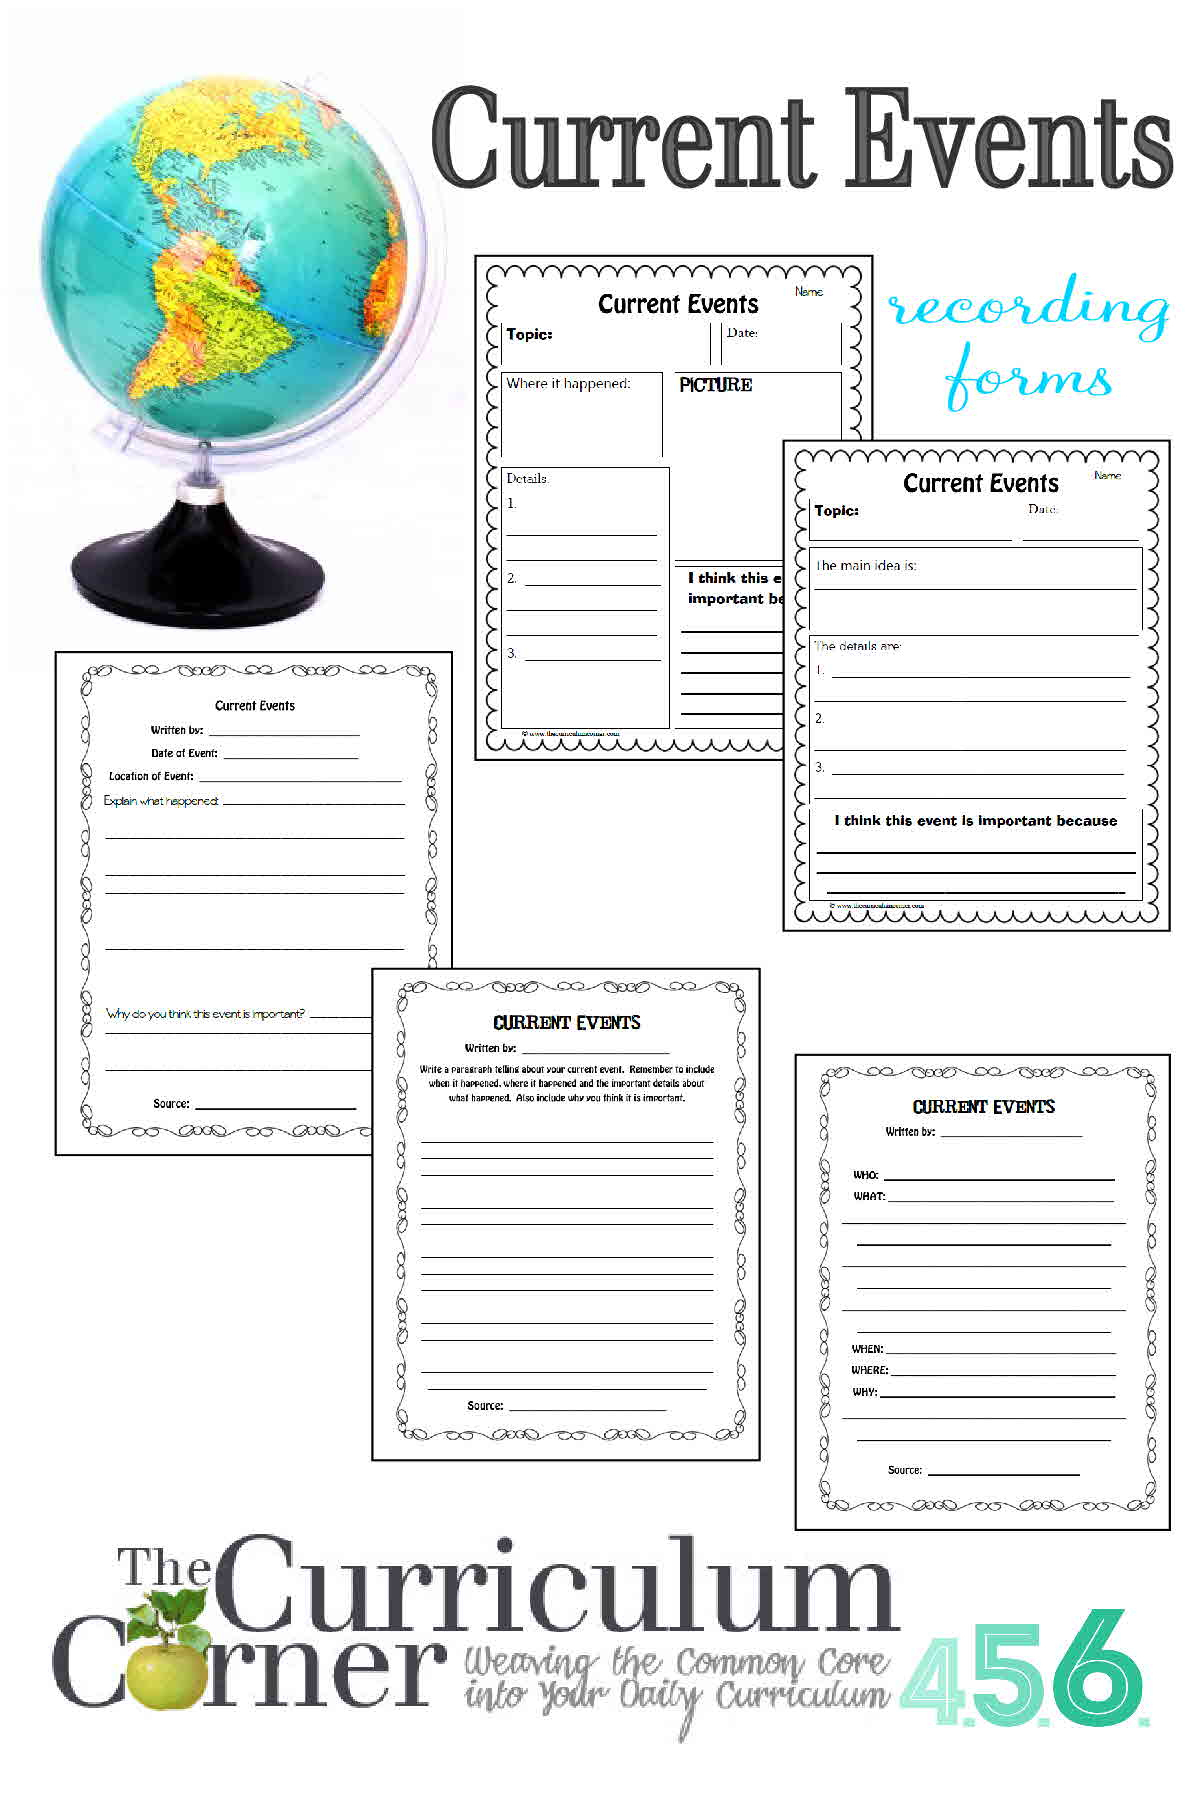 Current Events - The Curriculum Corner 4-5-6 | Current Events Printable Worksheet